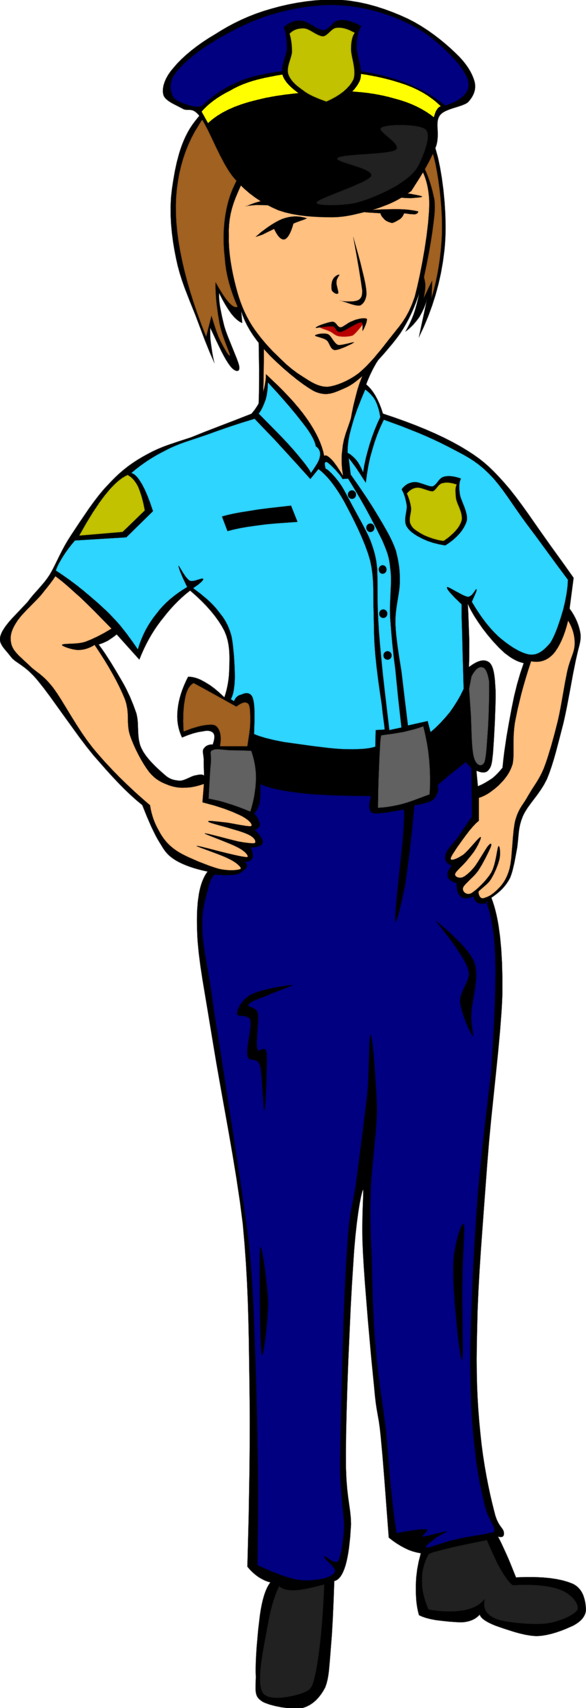 Police Clipart - ClipArt Best